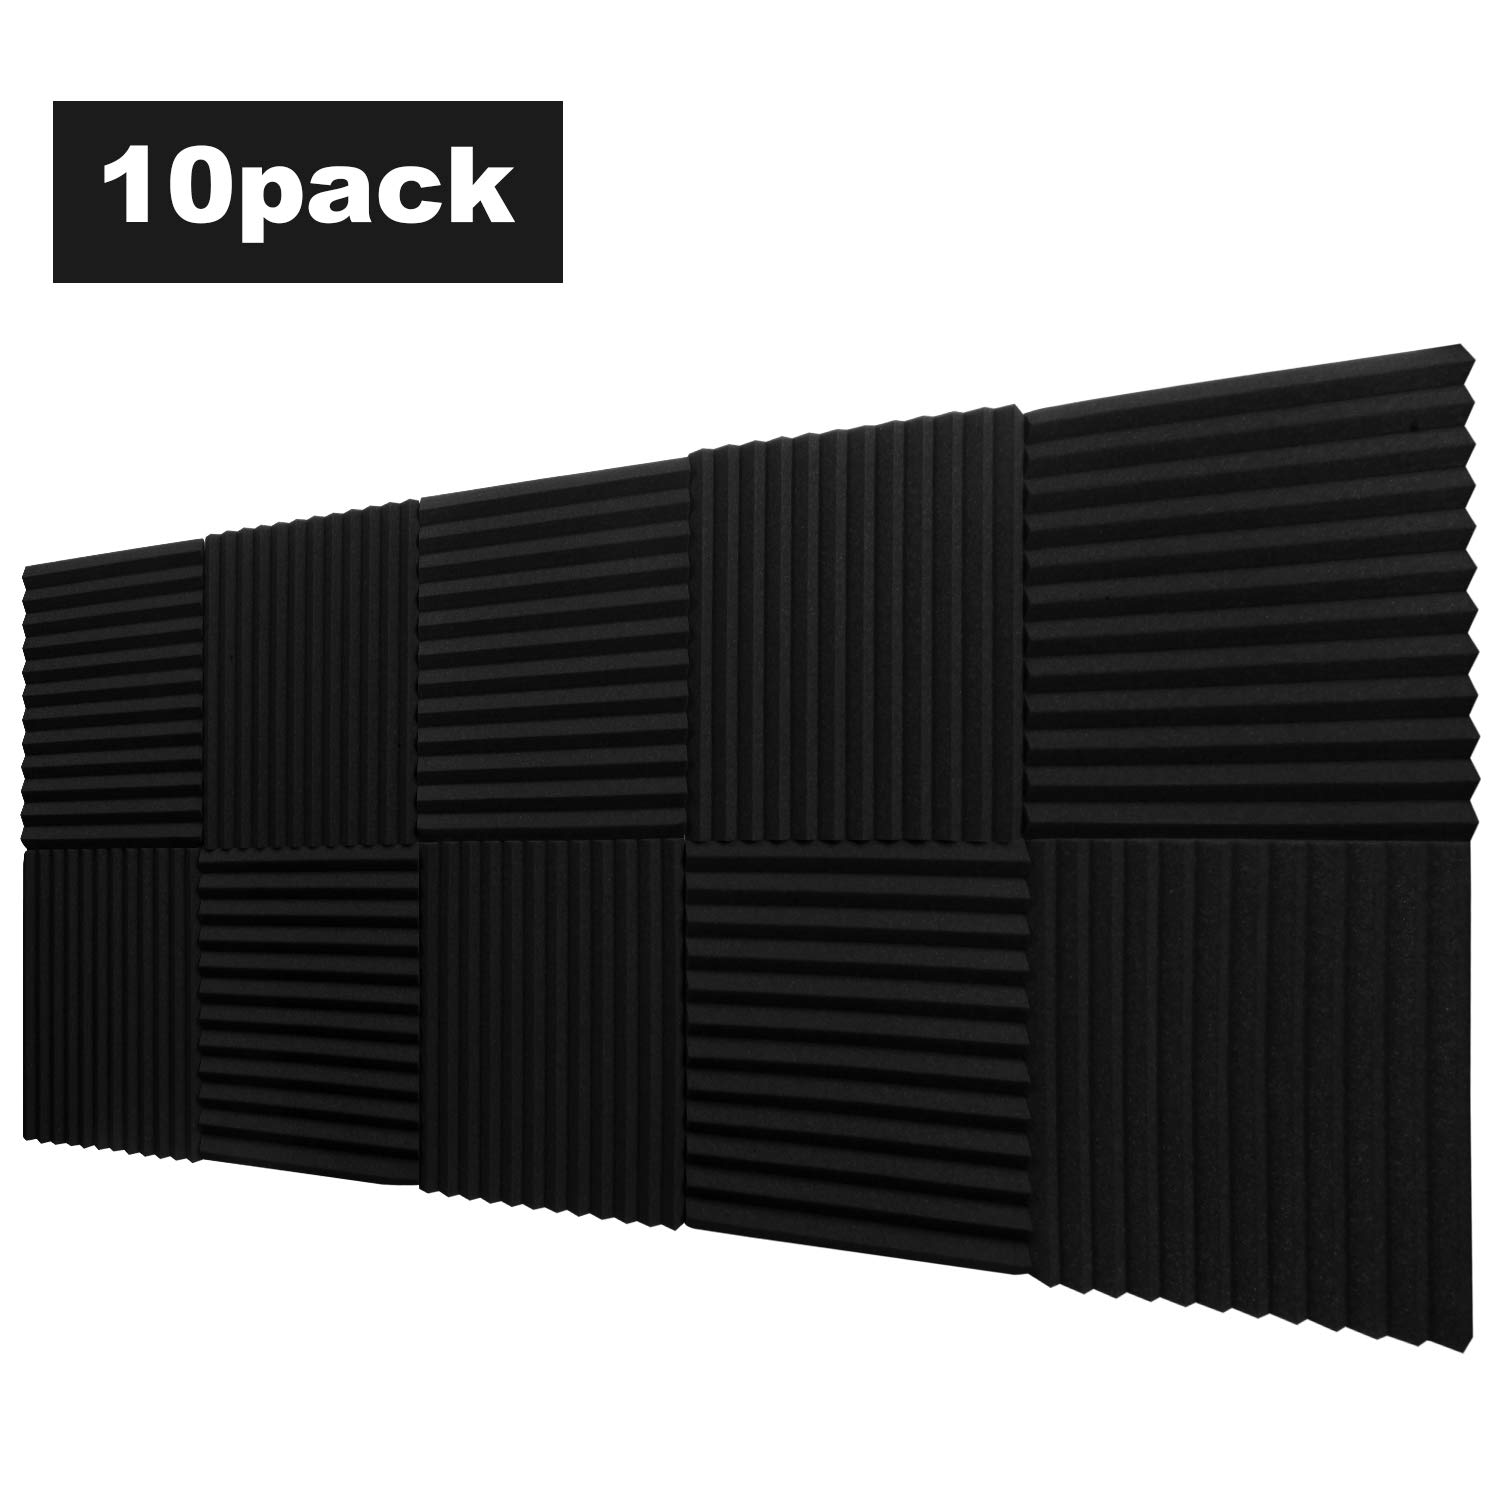 10 Pack,Acoustic Panels Studio Foam Wedges 1'' X 12'' X 12'',Sound-proofing,Sound Absorption,Flame Retardant(Black)